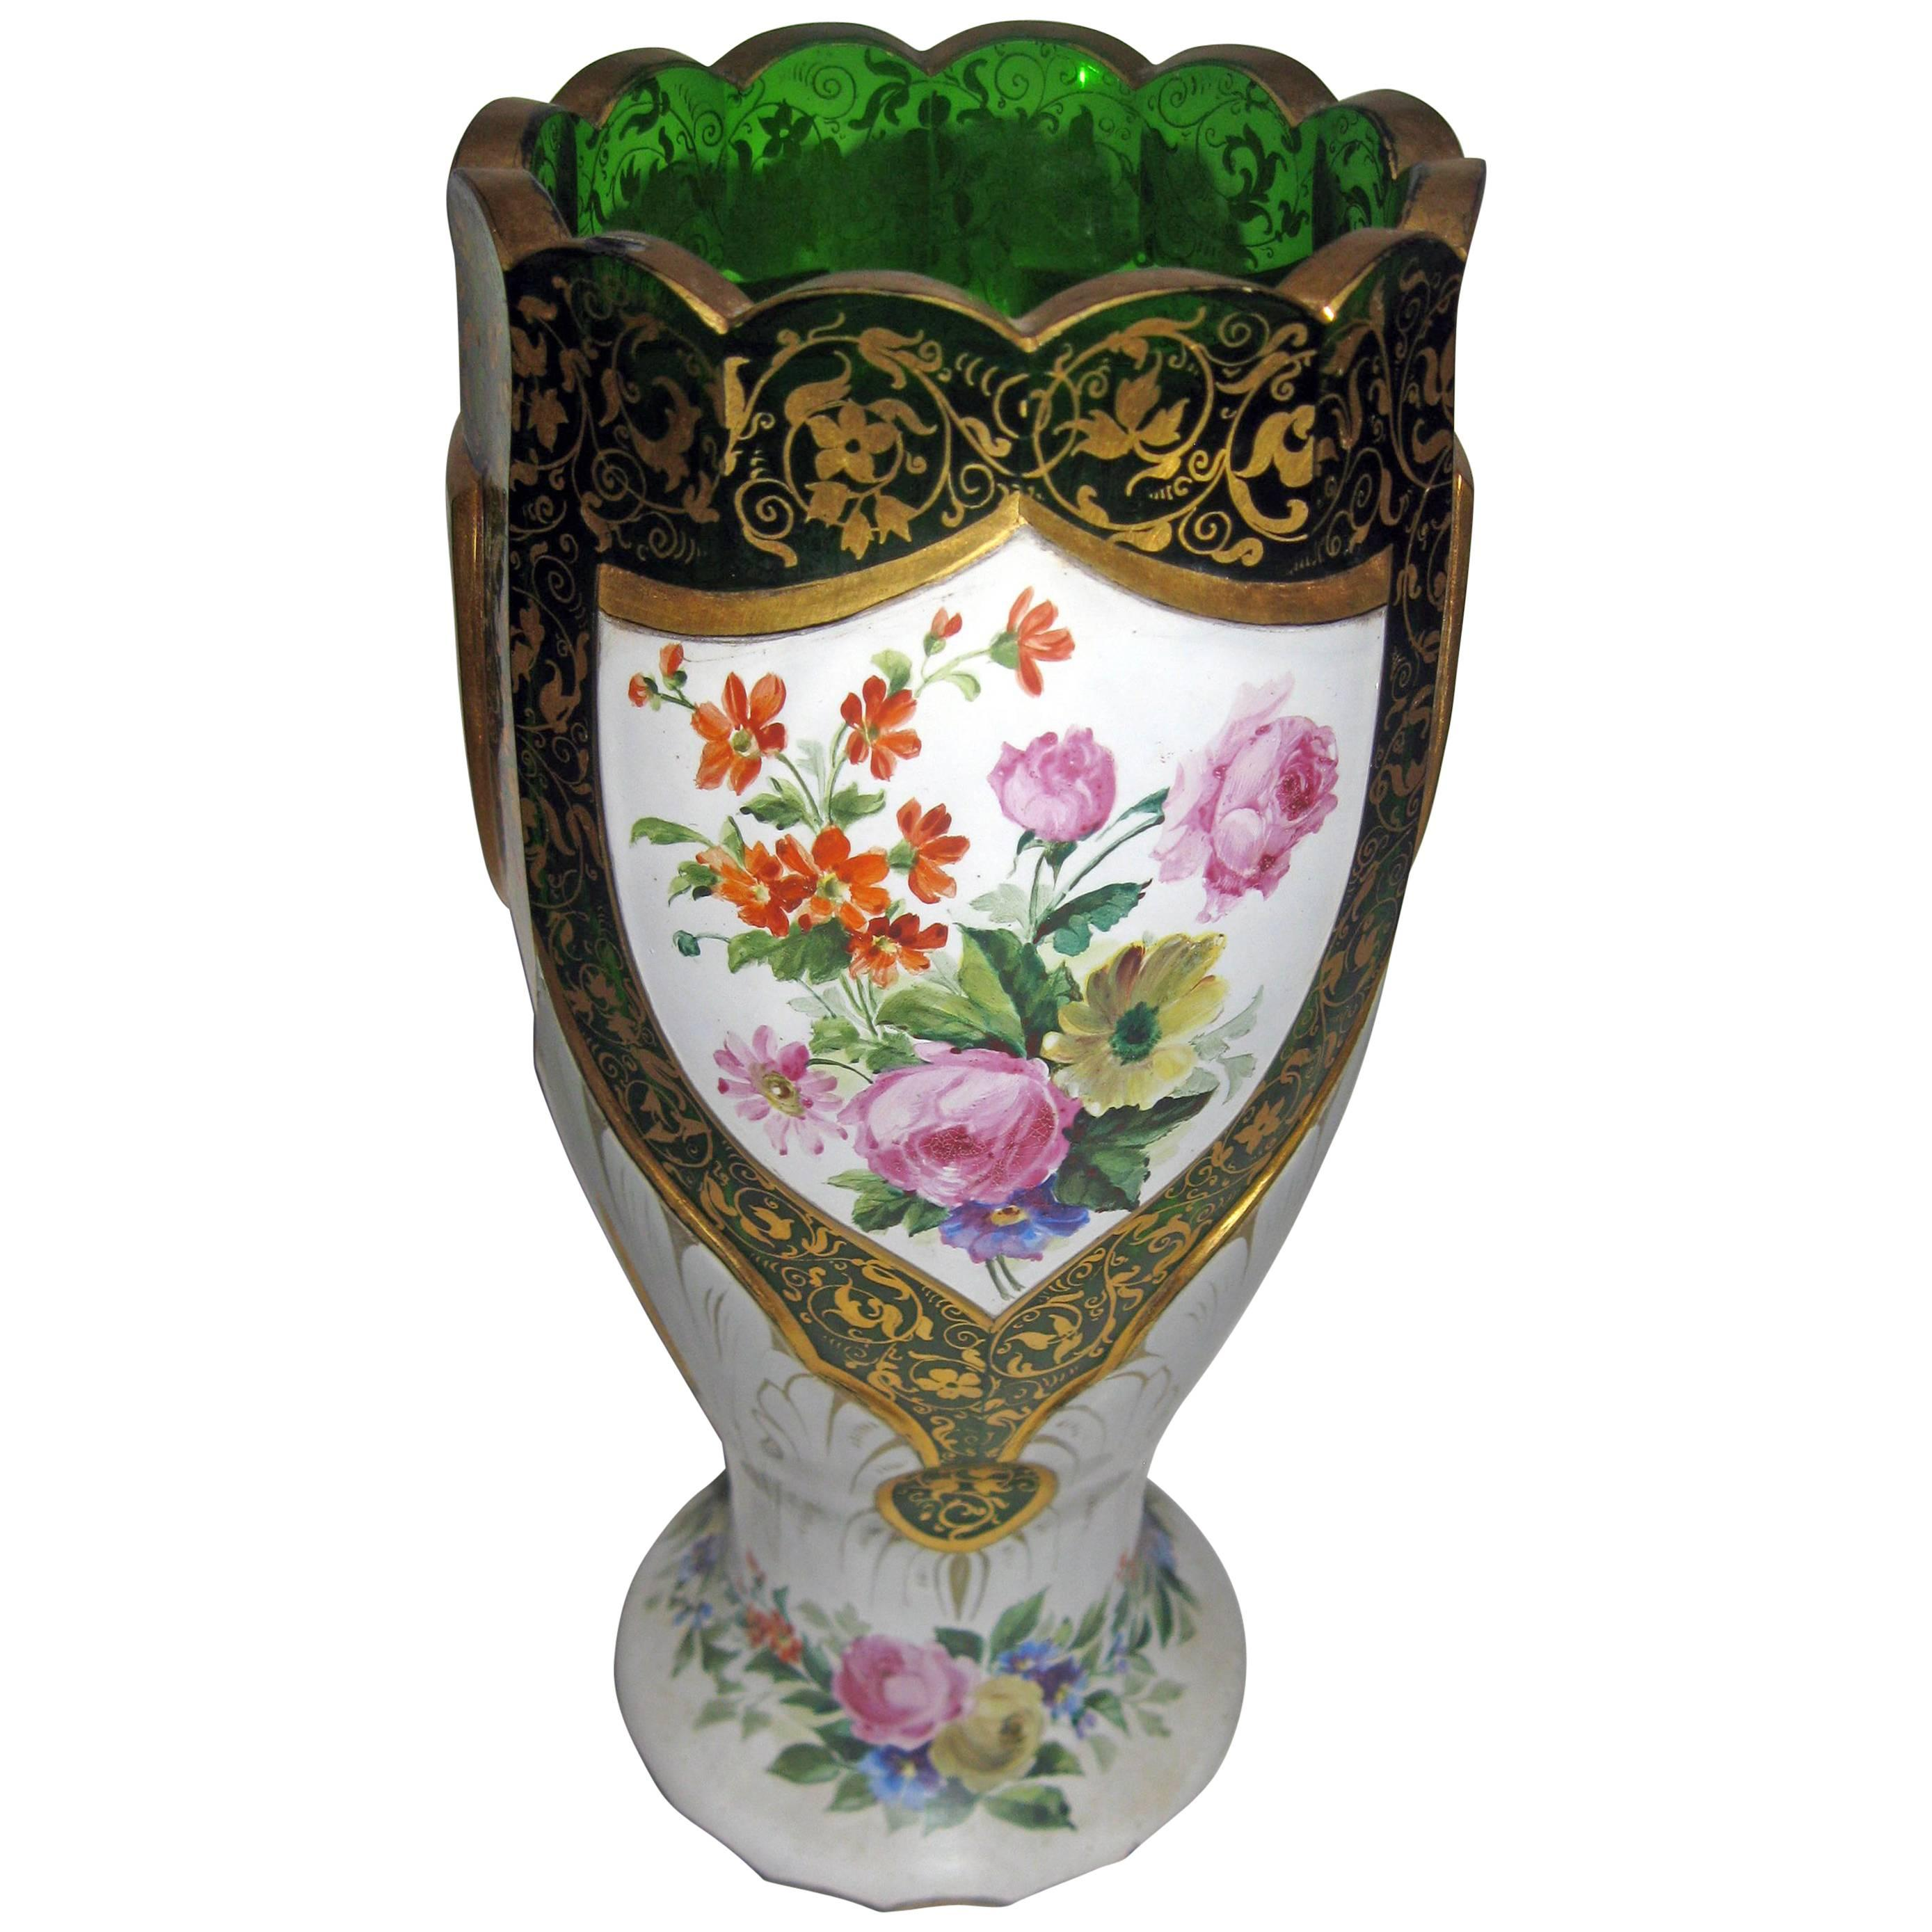 19th century Moser Green Bohemian Art Glass Overlay Vase with Roses